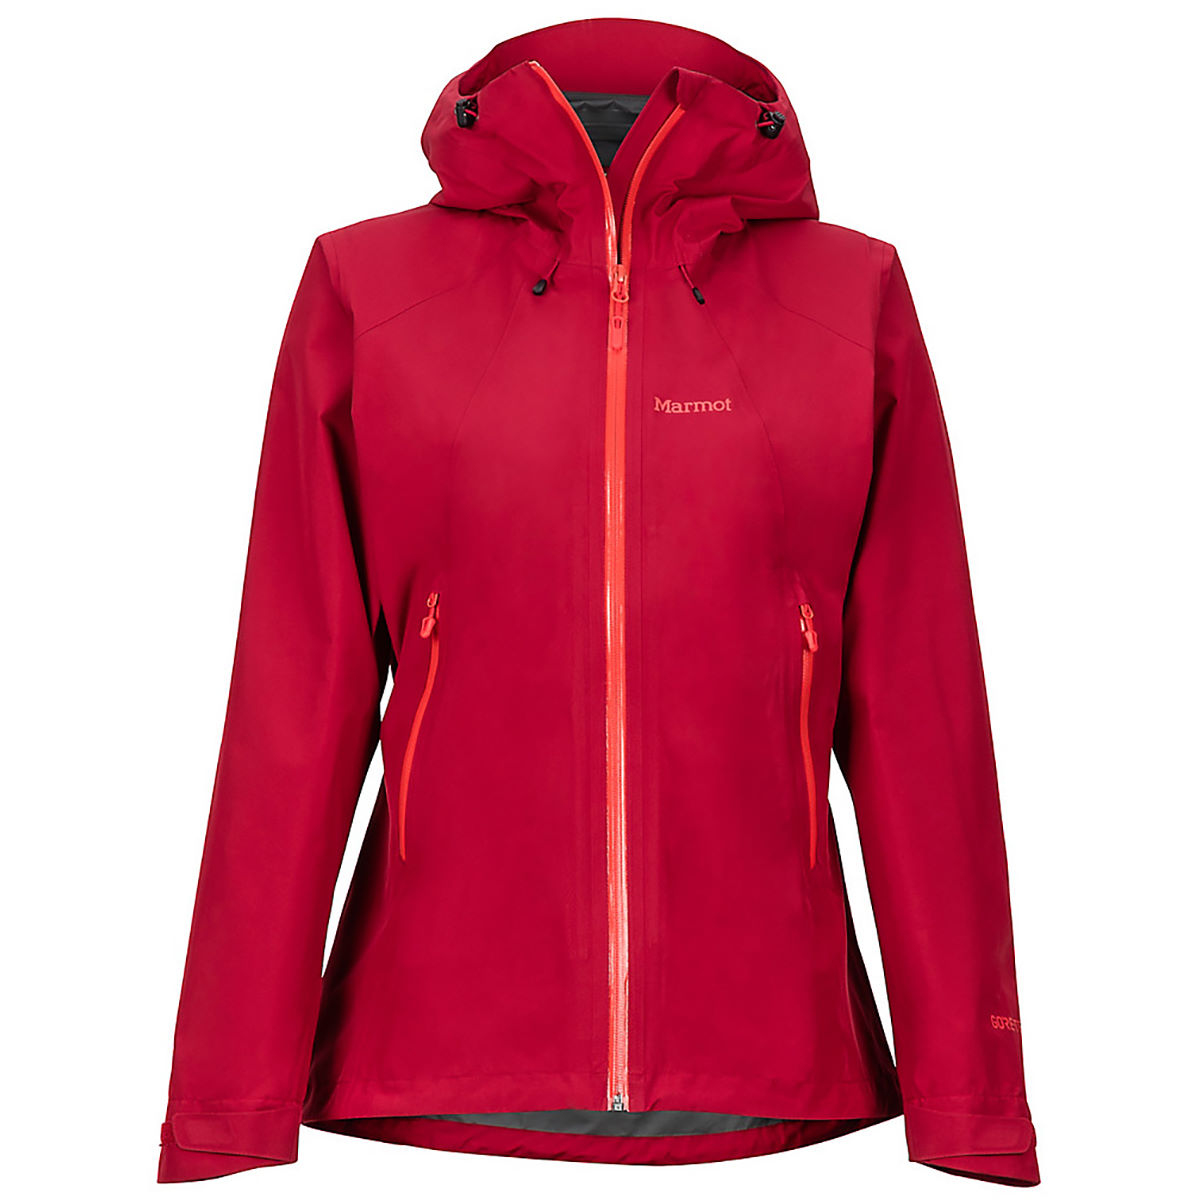 Marmot Marmot Womens Knife Edge Jacket   Jackets